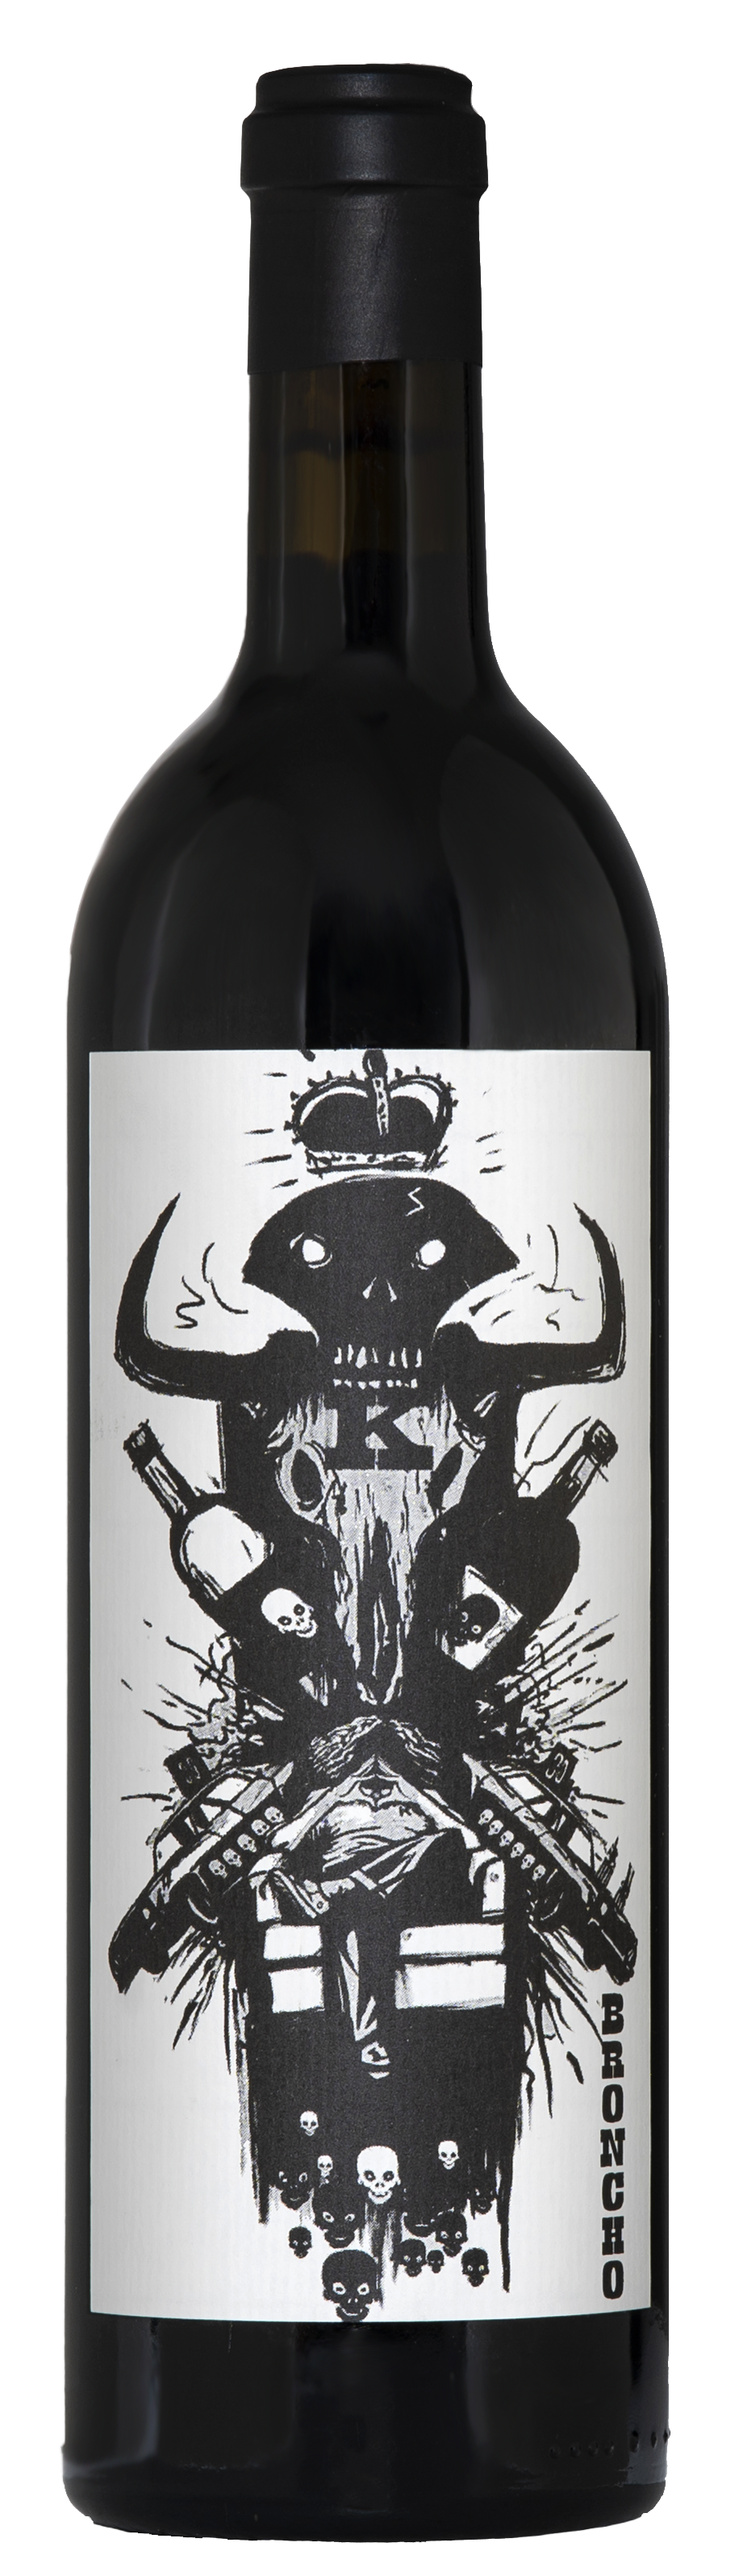 A black bottle of malbec wine. Black capsule on top with a tall white label with black ink showing incredible art.